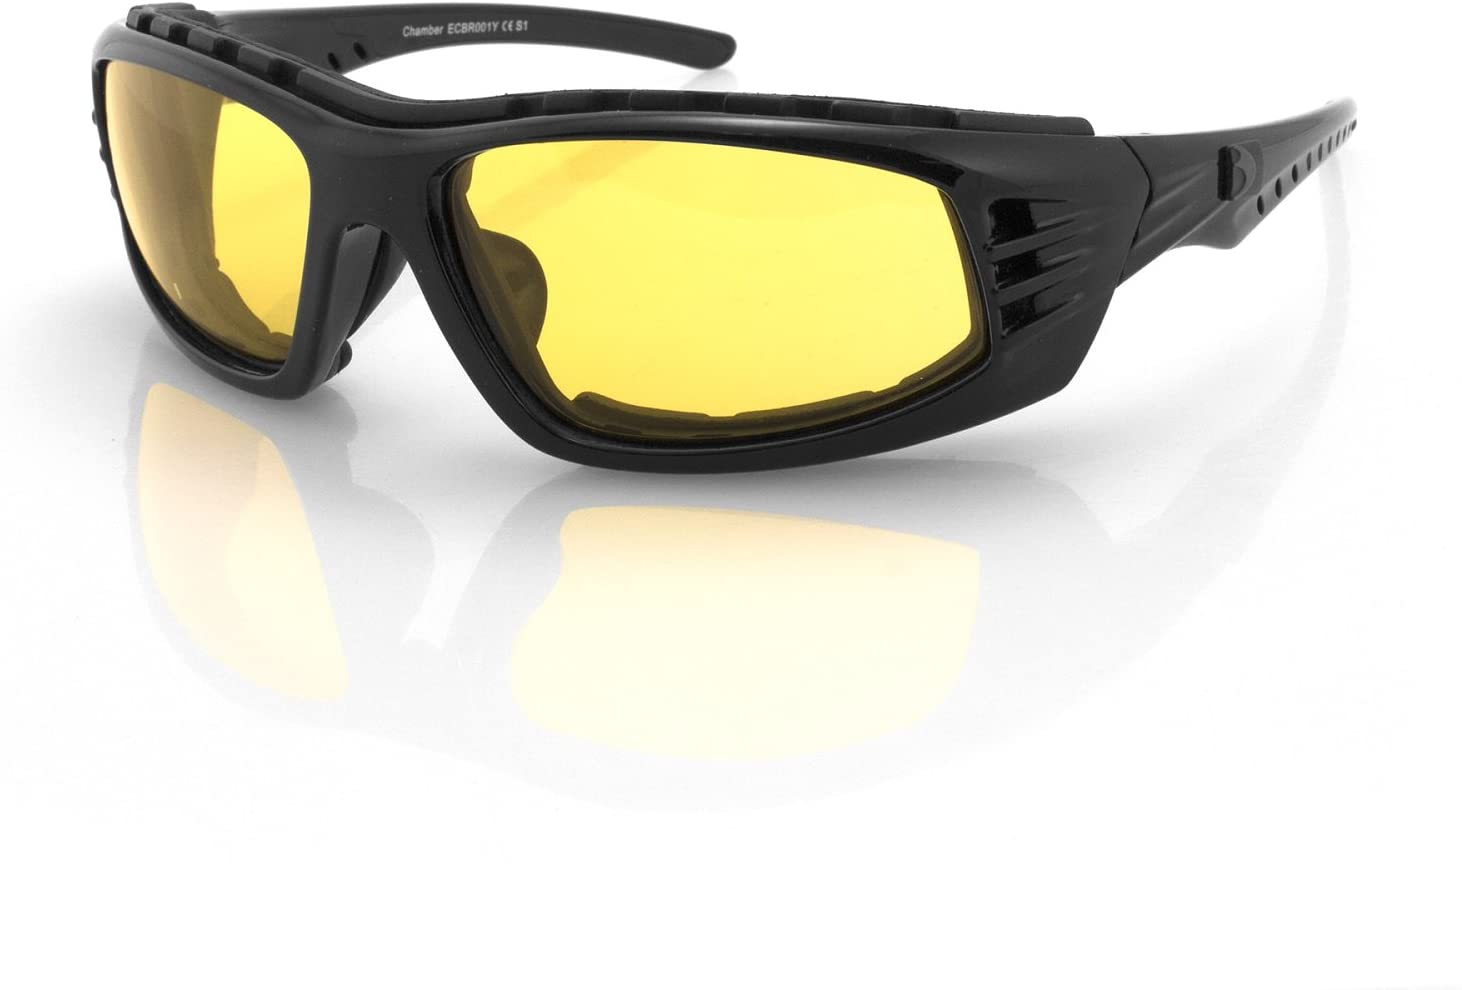 Bobster Chamber Sunglasses with Black Frame and Clear Reflective Lens, Black Gloss